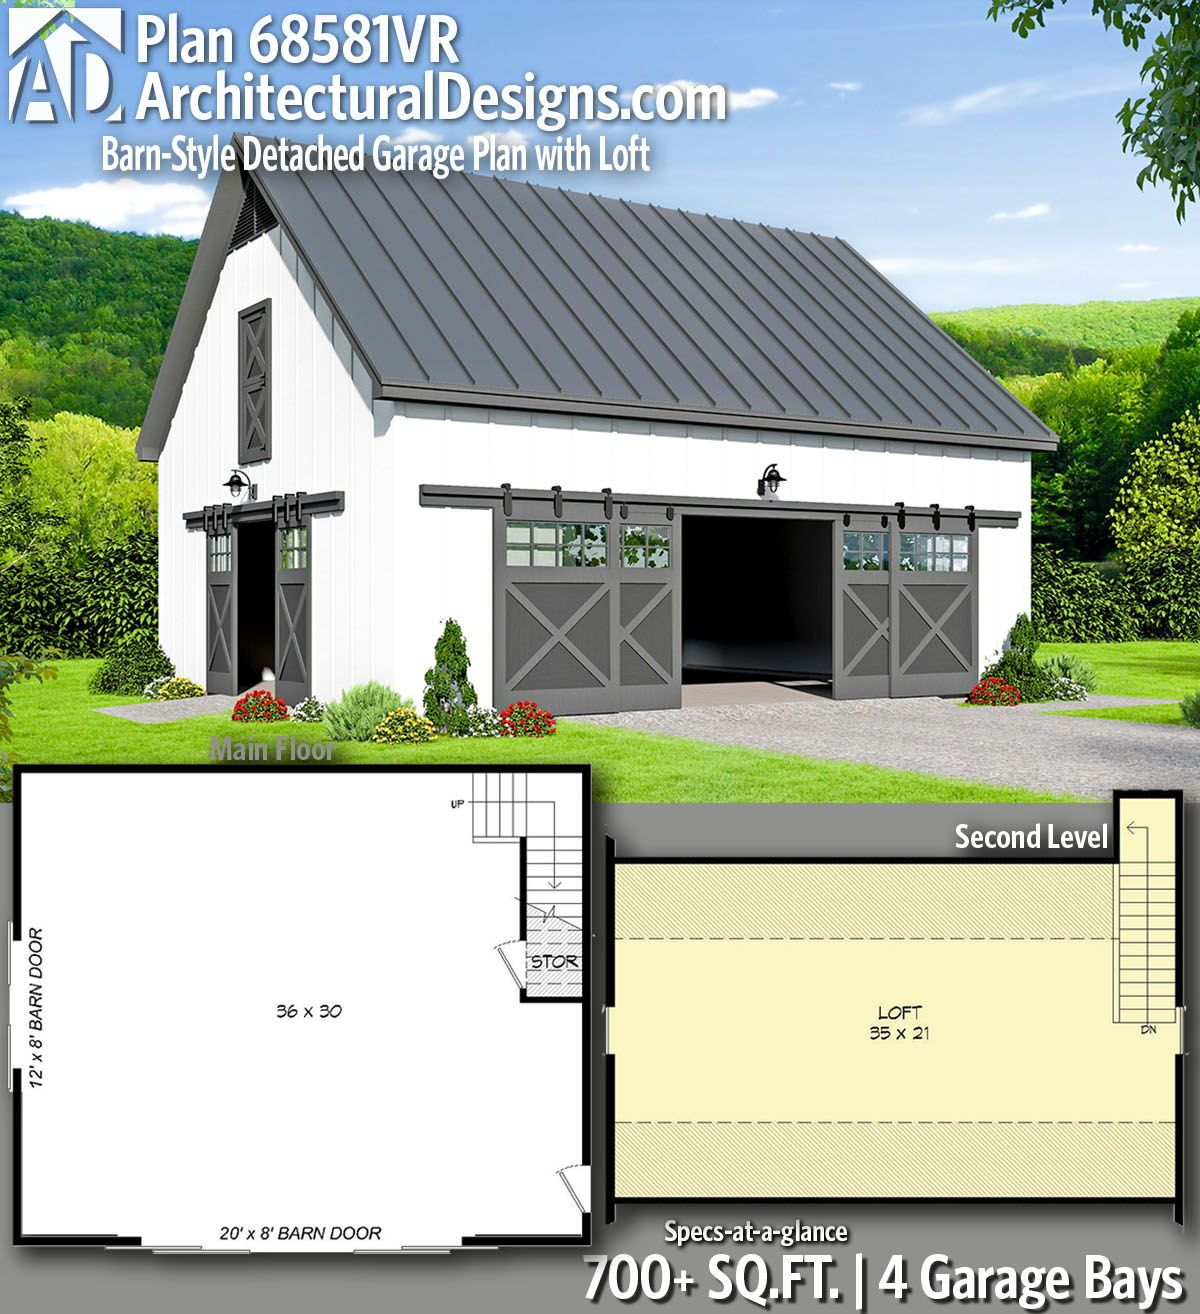 Architectural Designs Carriage House Plan 14631rk Gives: Plan 68571VR: Modern Duplex House Plan With An RV Garage